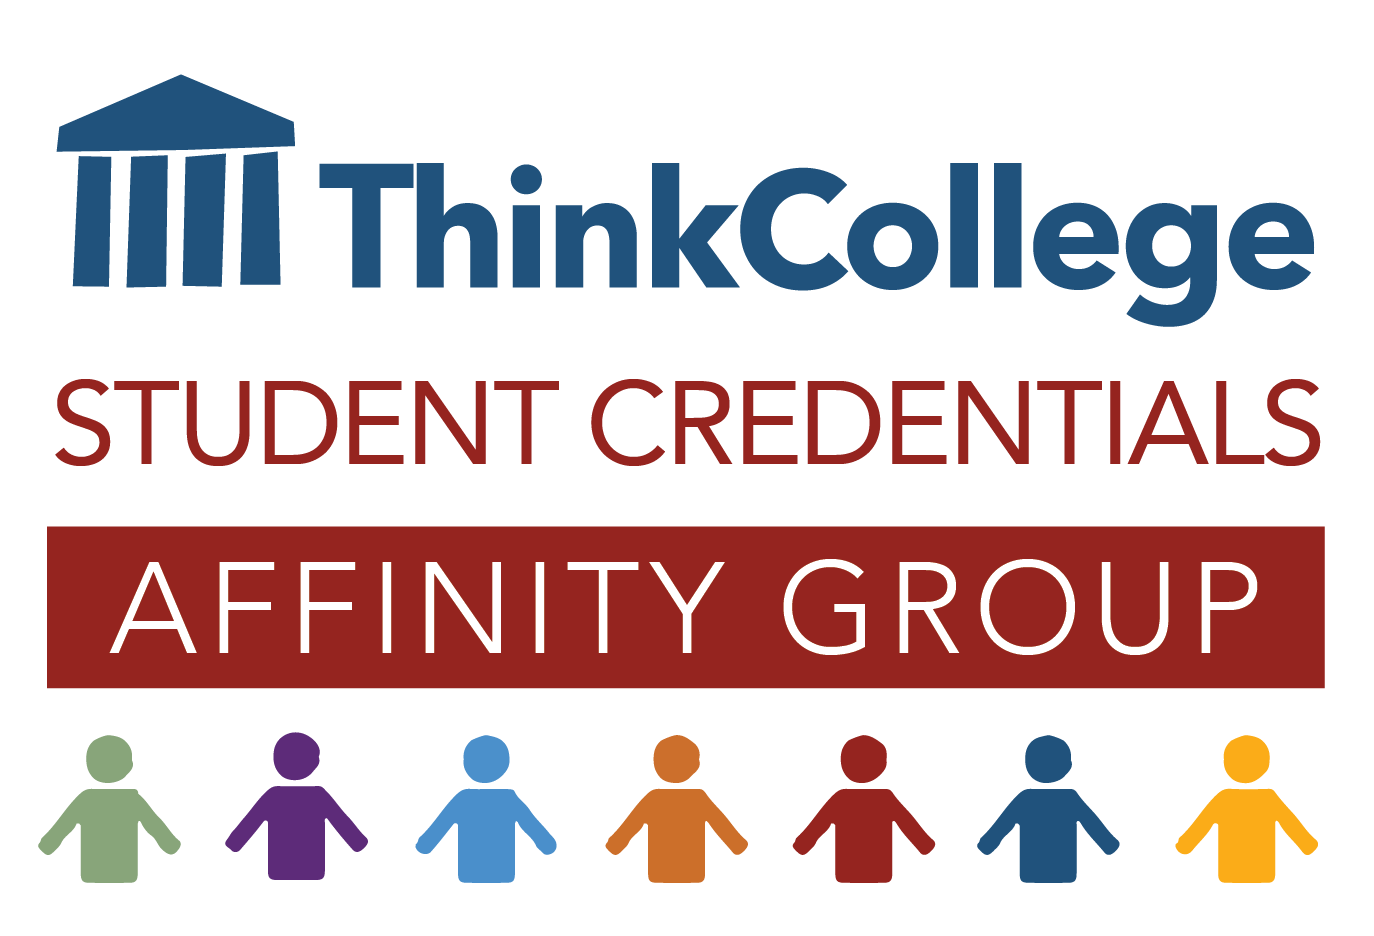 Student Credentials Affinity Group